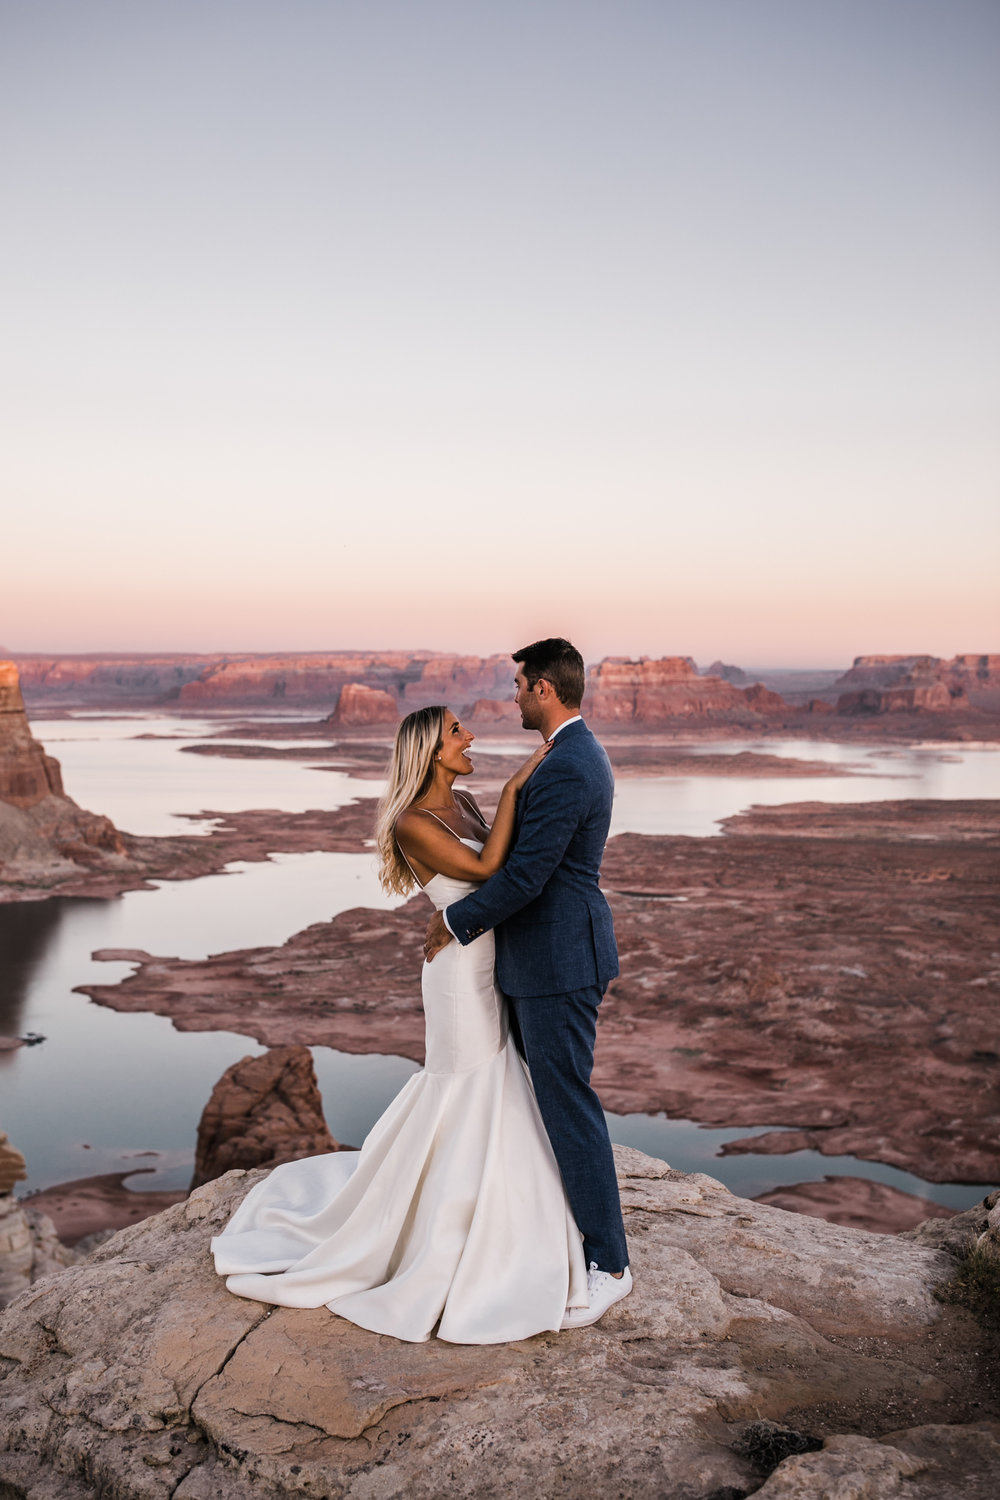 jeep elopement in page, arizona | lake powell adventure wedding | desert elopement inspiration | utah wedding and elopement photographer | the hearnes